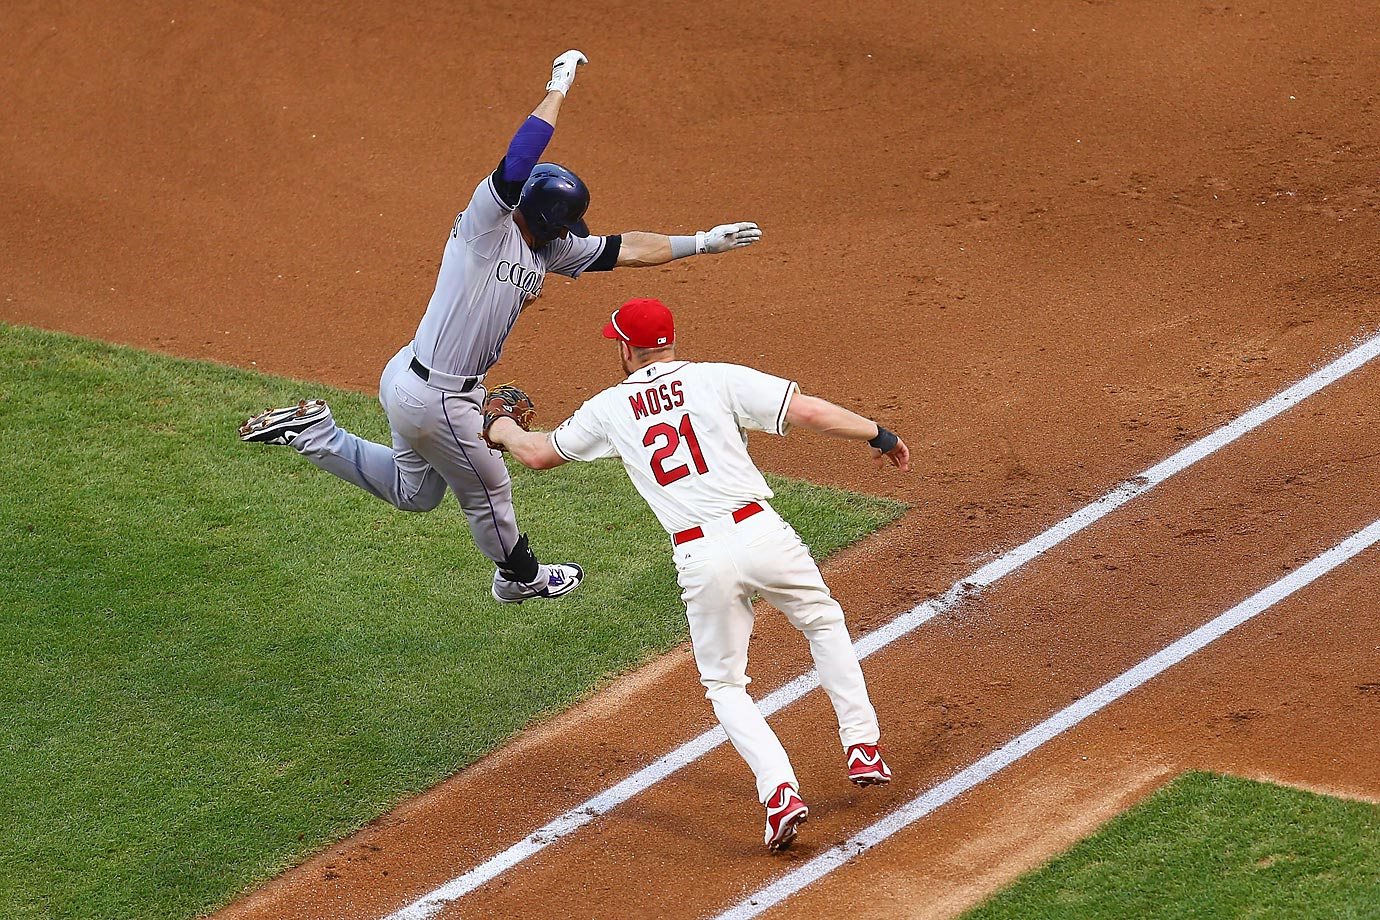 Brandon Moss of the St. Louis Cardinals tags out Daniel Descalso of the Colorado Rockies at Busch Stadium.